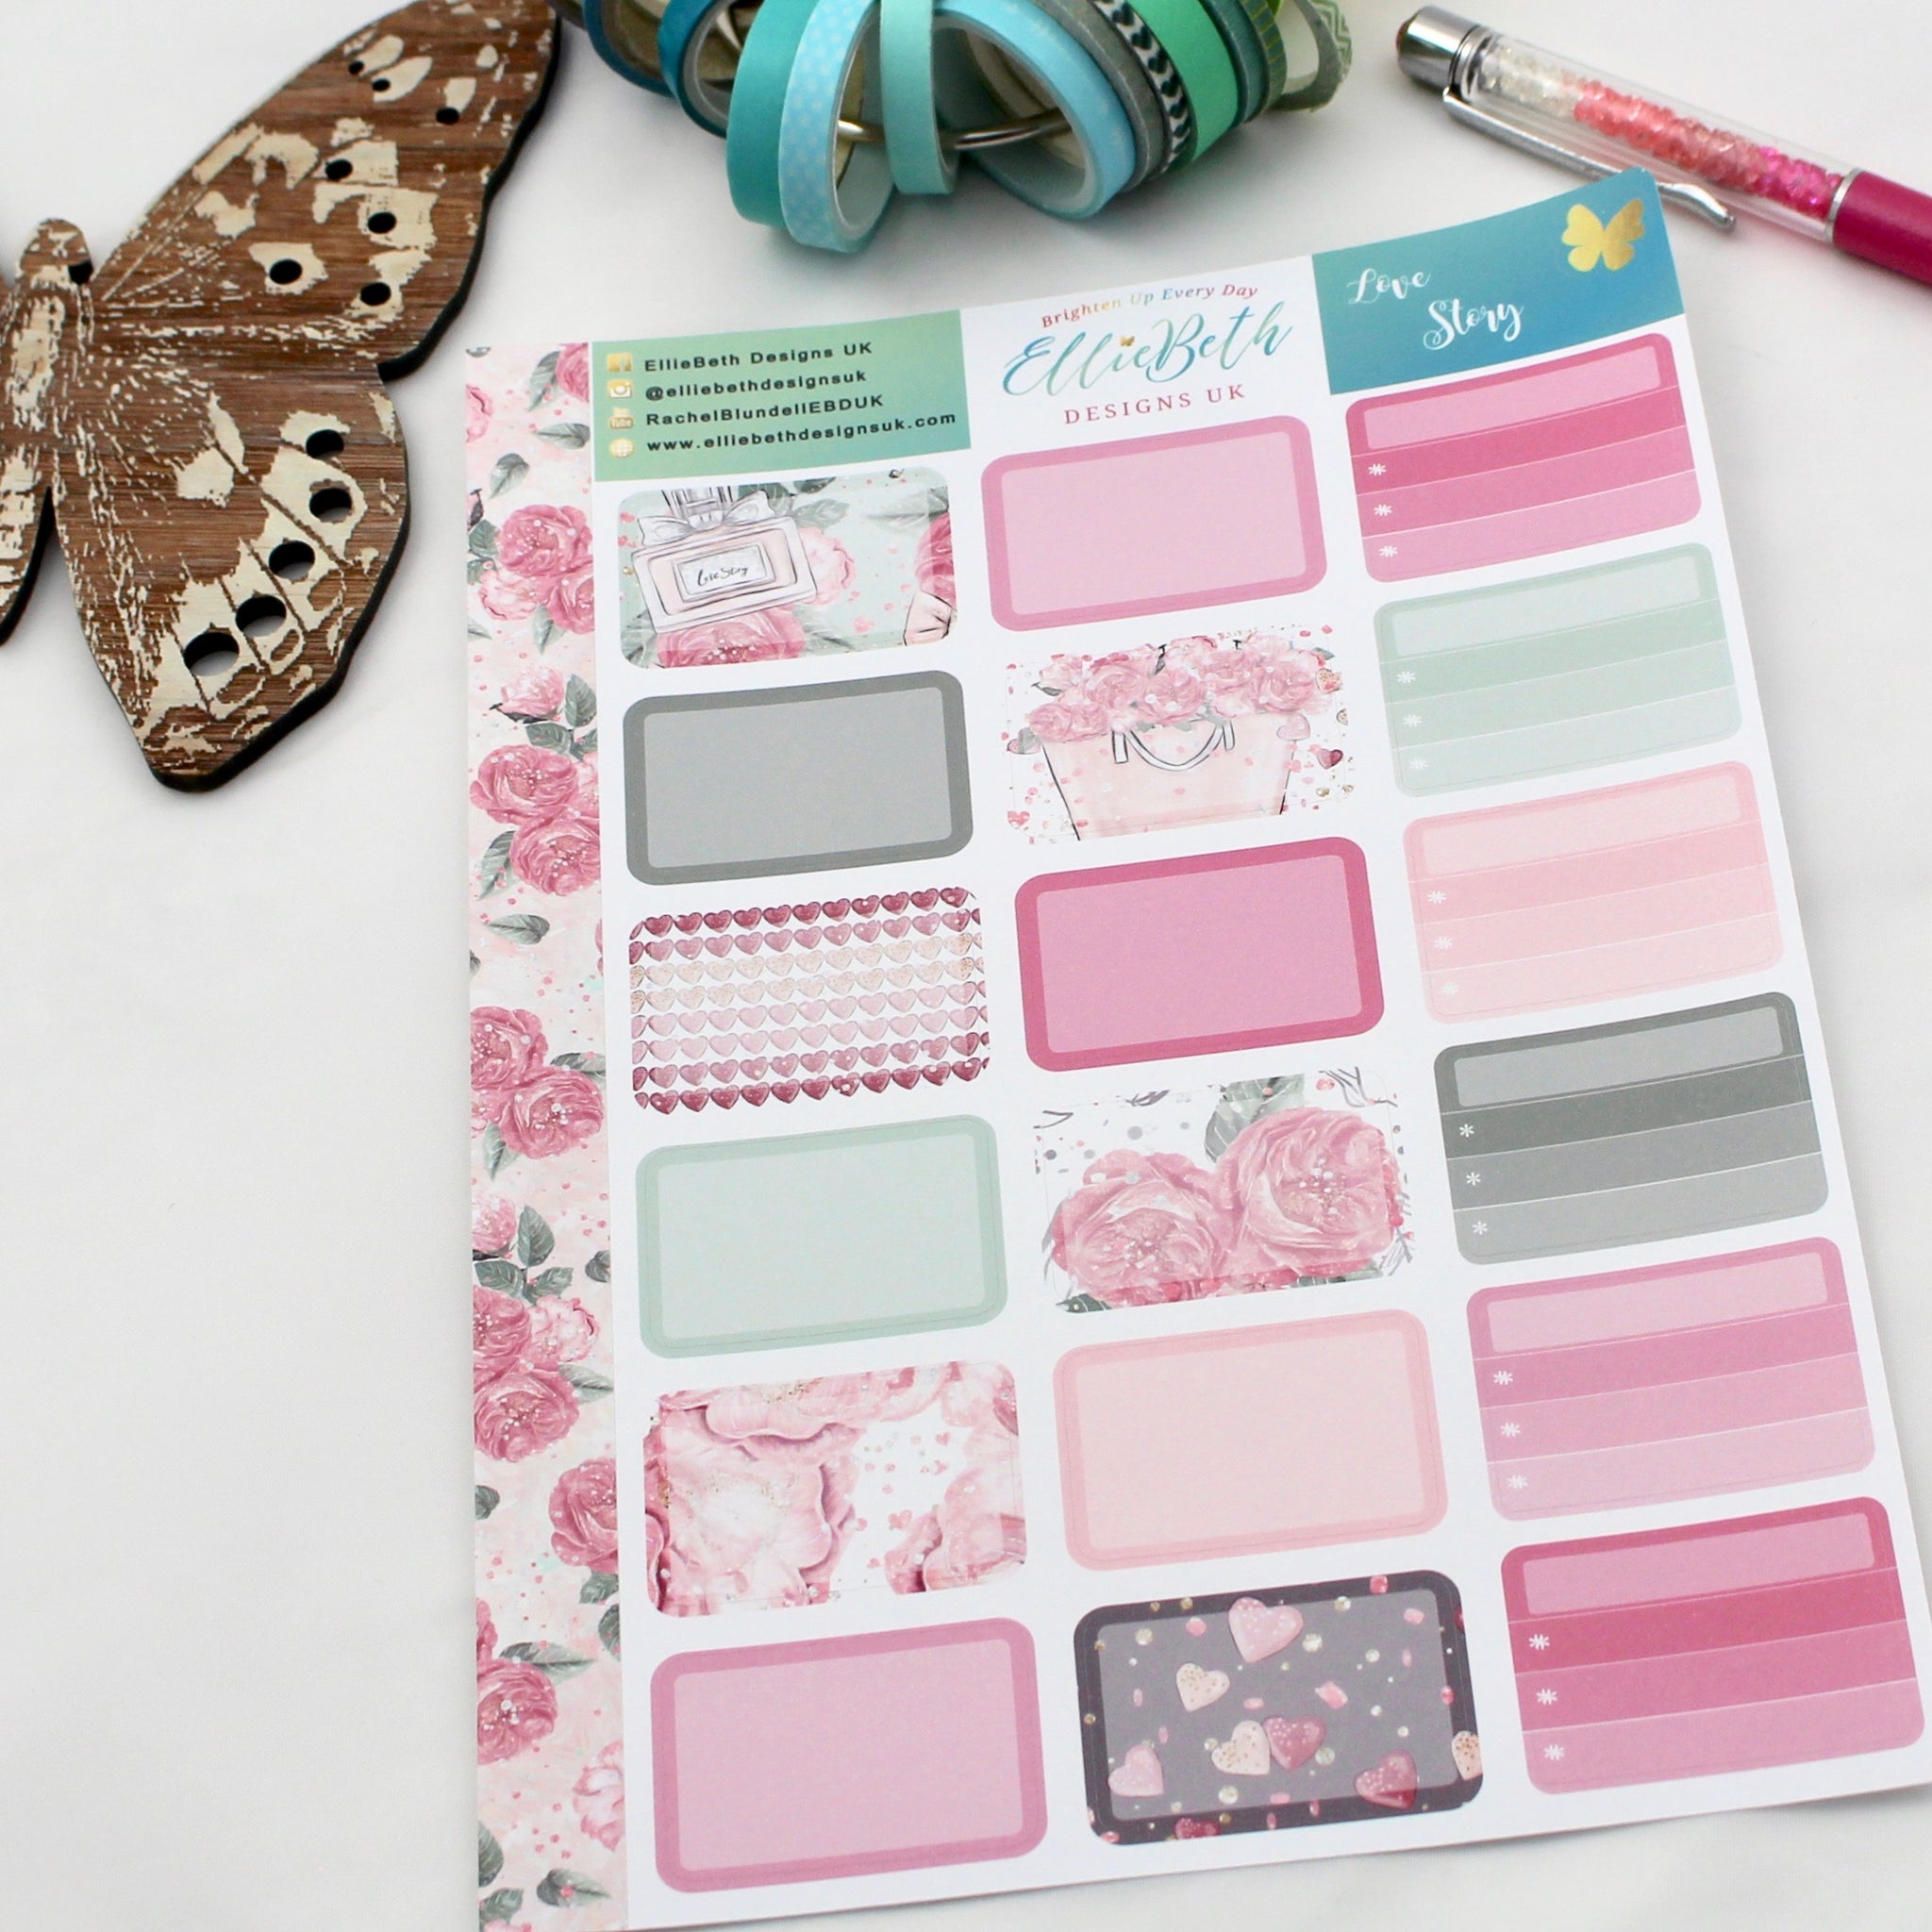 'Love Story' - Half Boxes -  A5 binder ready planner stickers - EllieBeth Designs UK